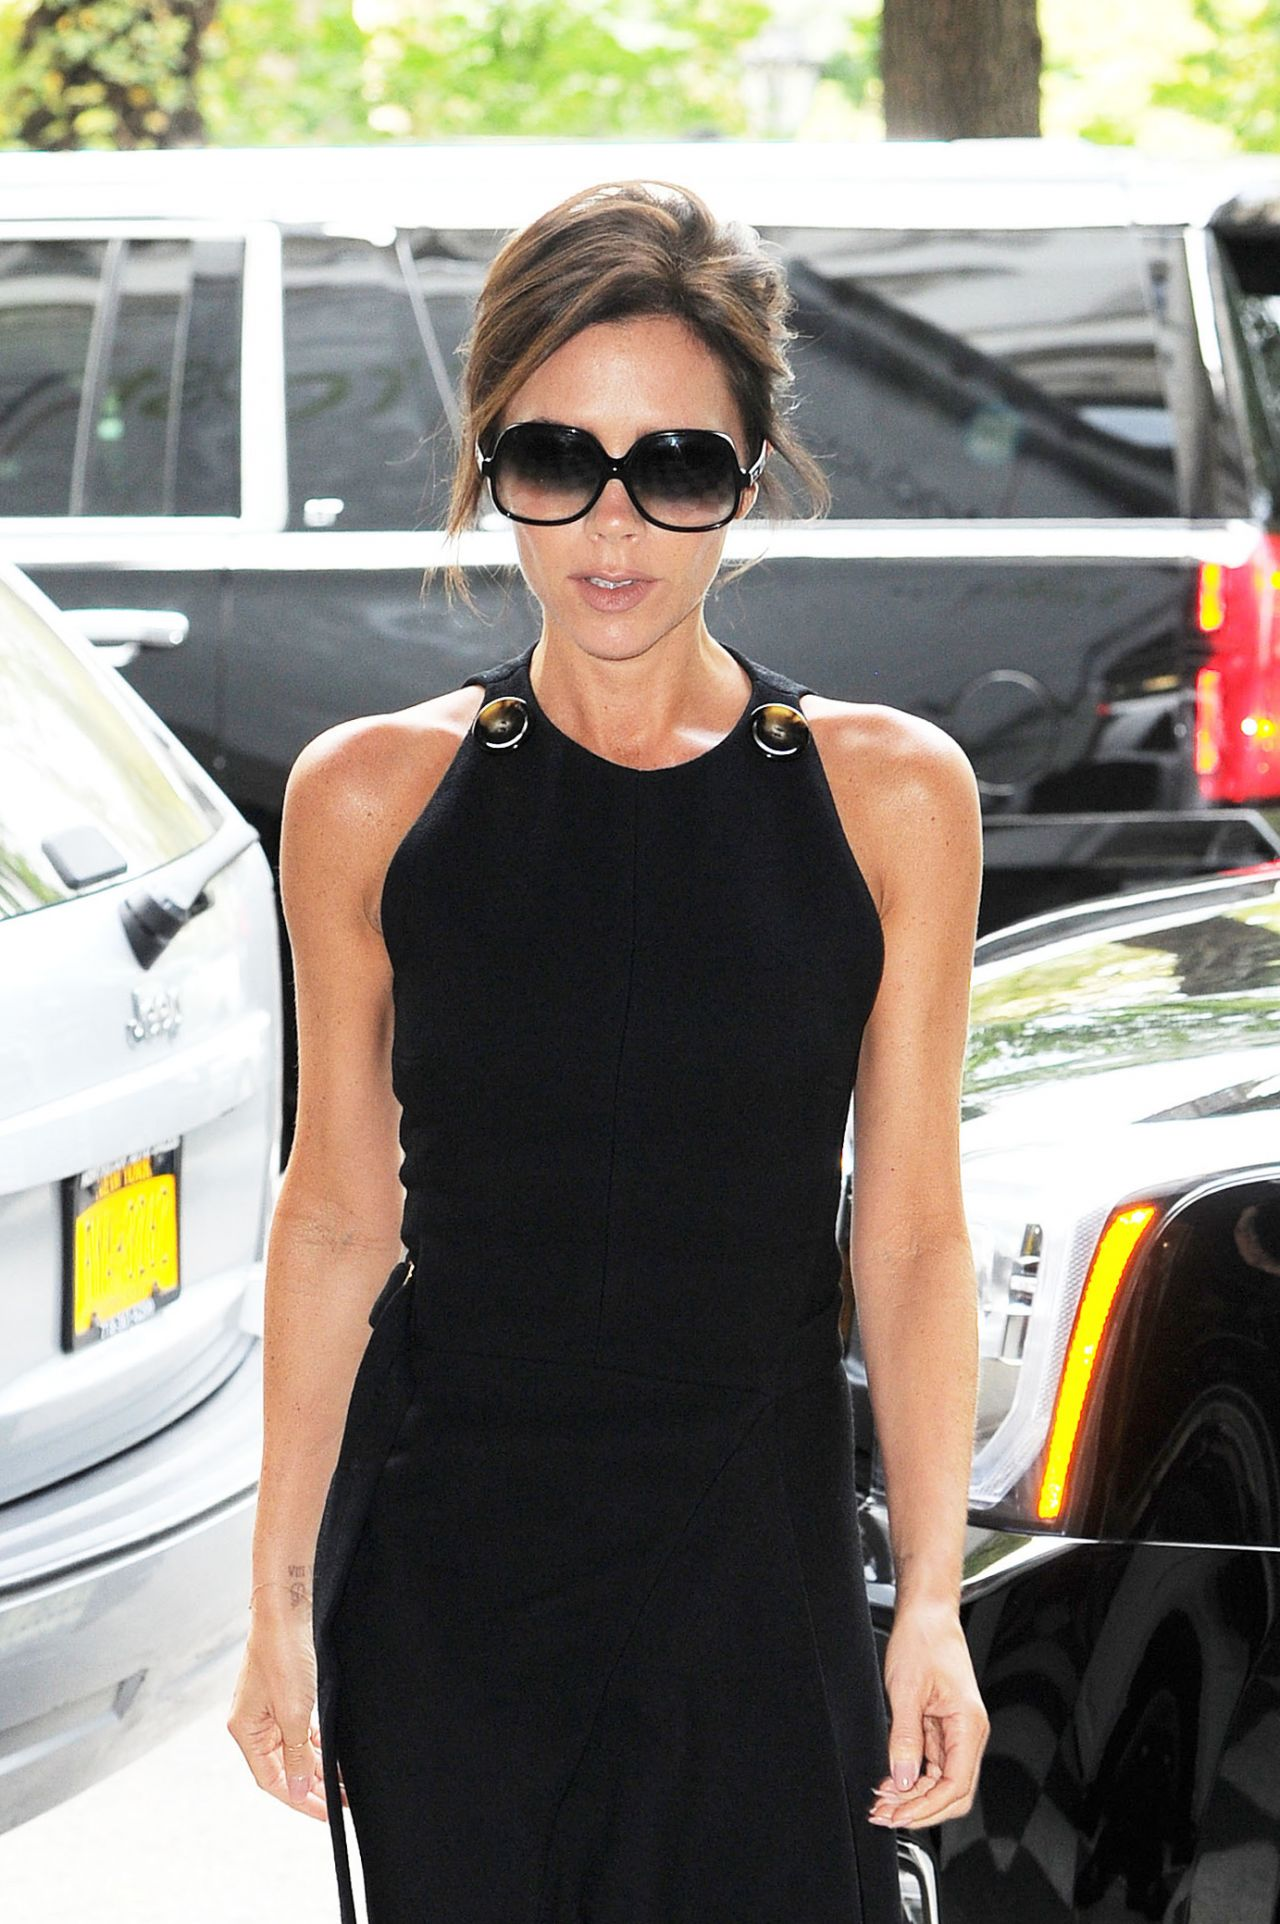 victoria-beckham-out-in-new-york-city-september-2015_2